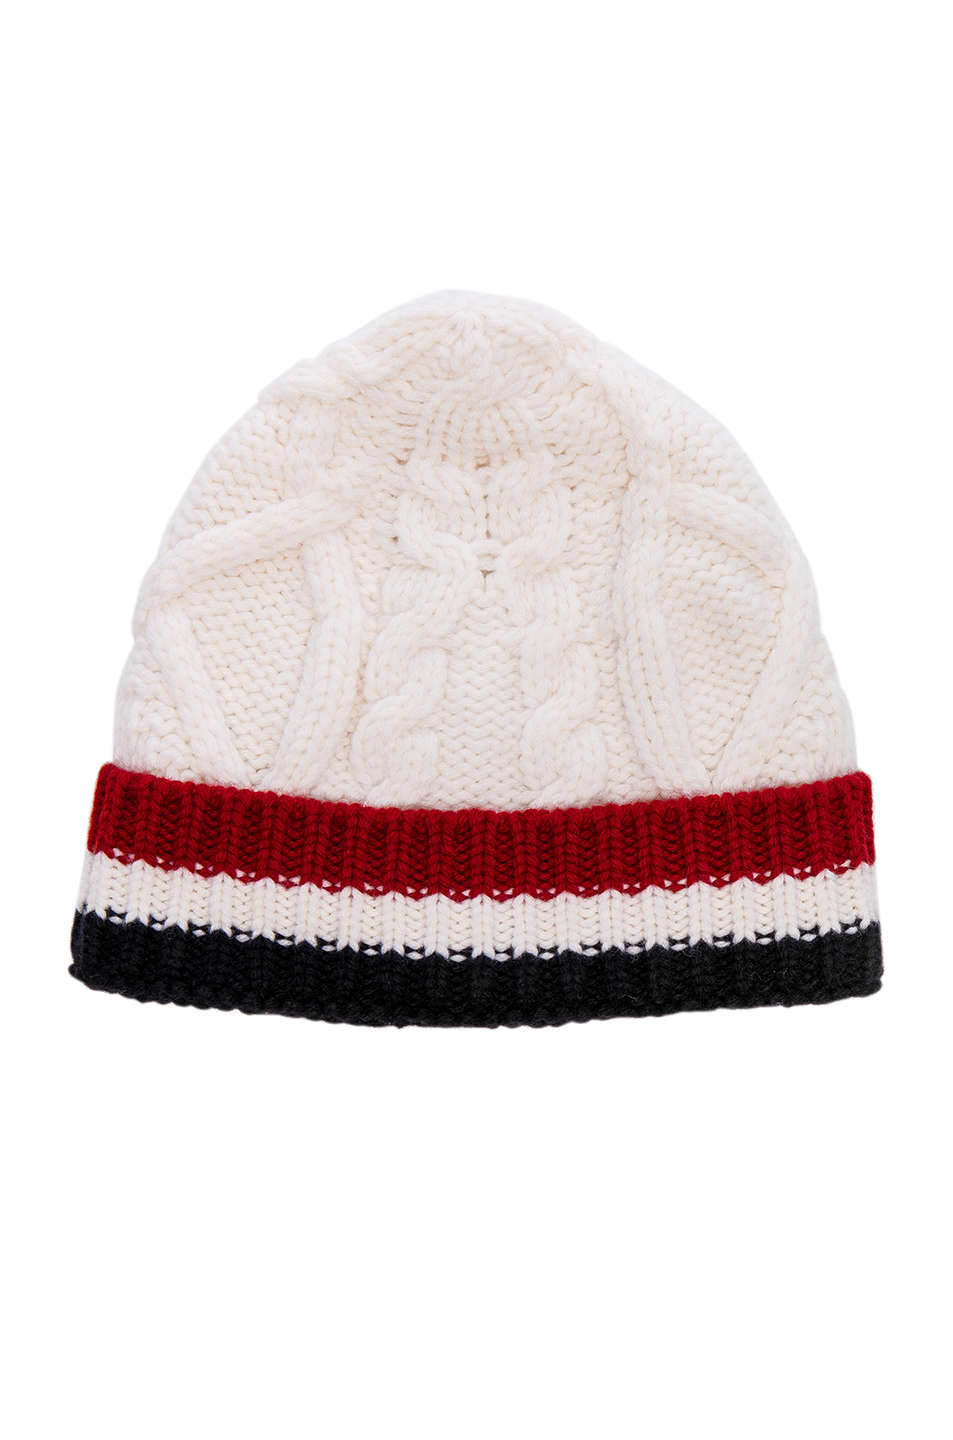 Thom Browne Aran Cable Hat in White